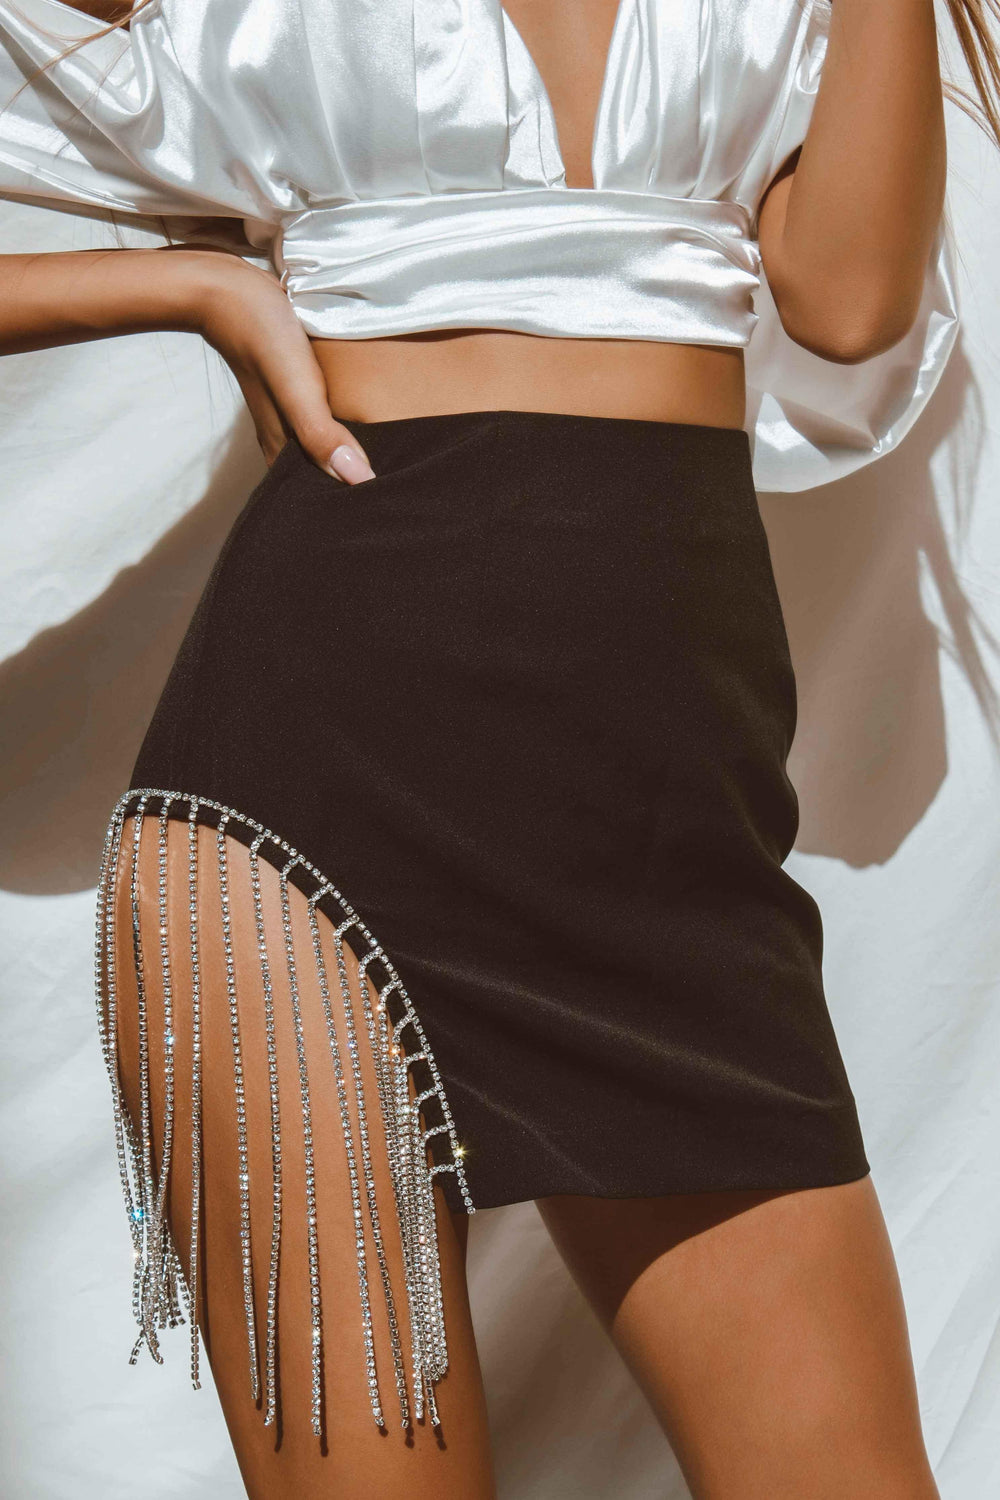 ZINNIA SKIRT IN BLACK | Women's Online Shopping | CHICLEFRIQUE  (4438216736857)